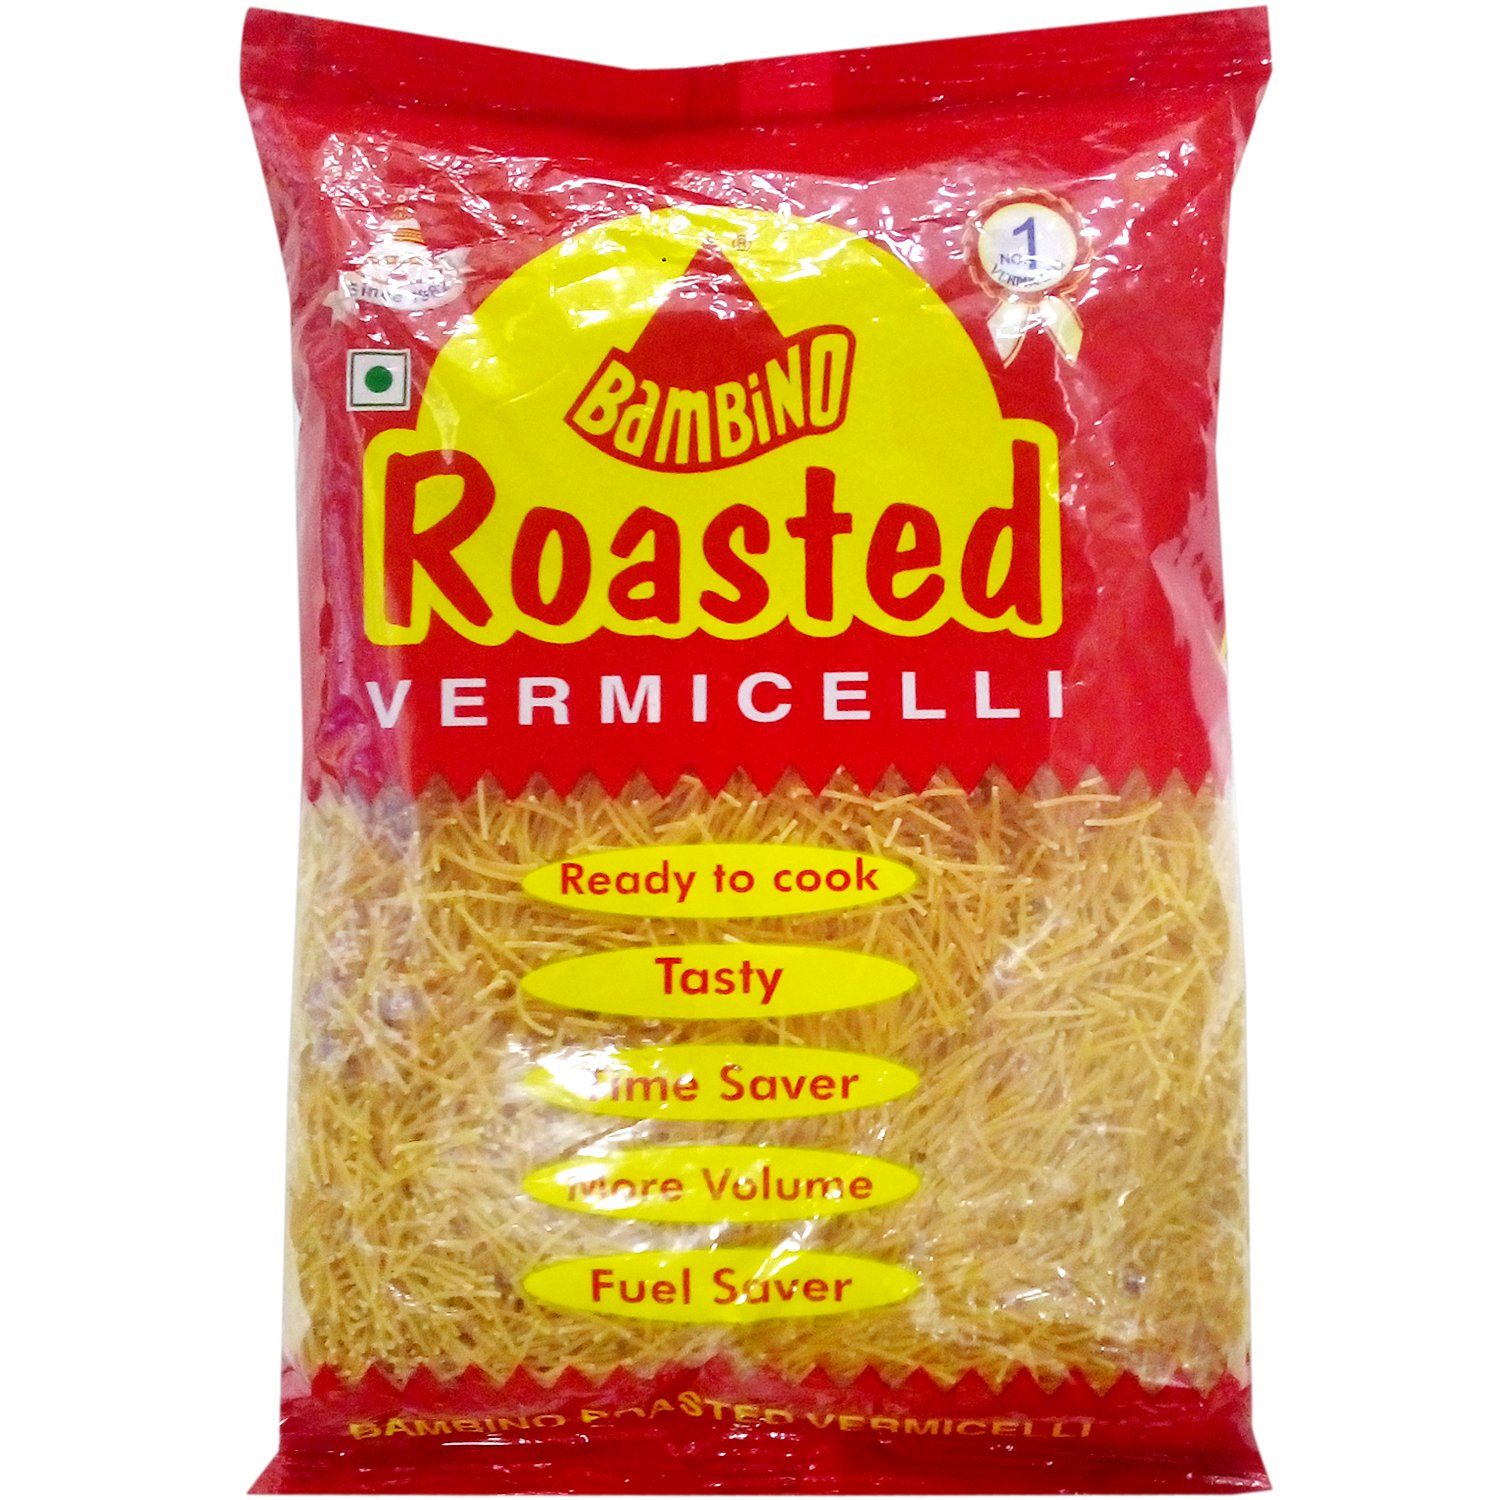 VERMICELLI - ROASTED